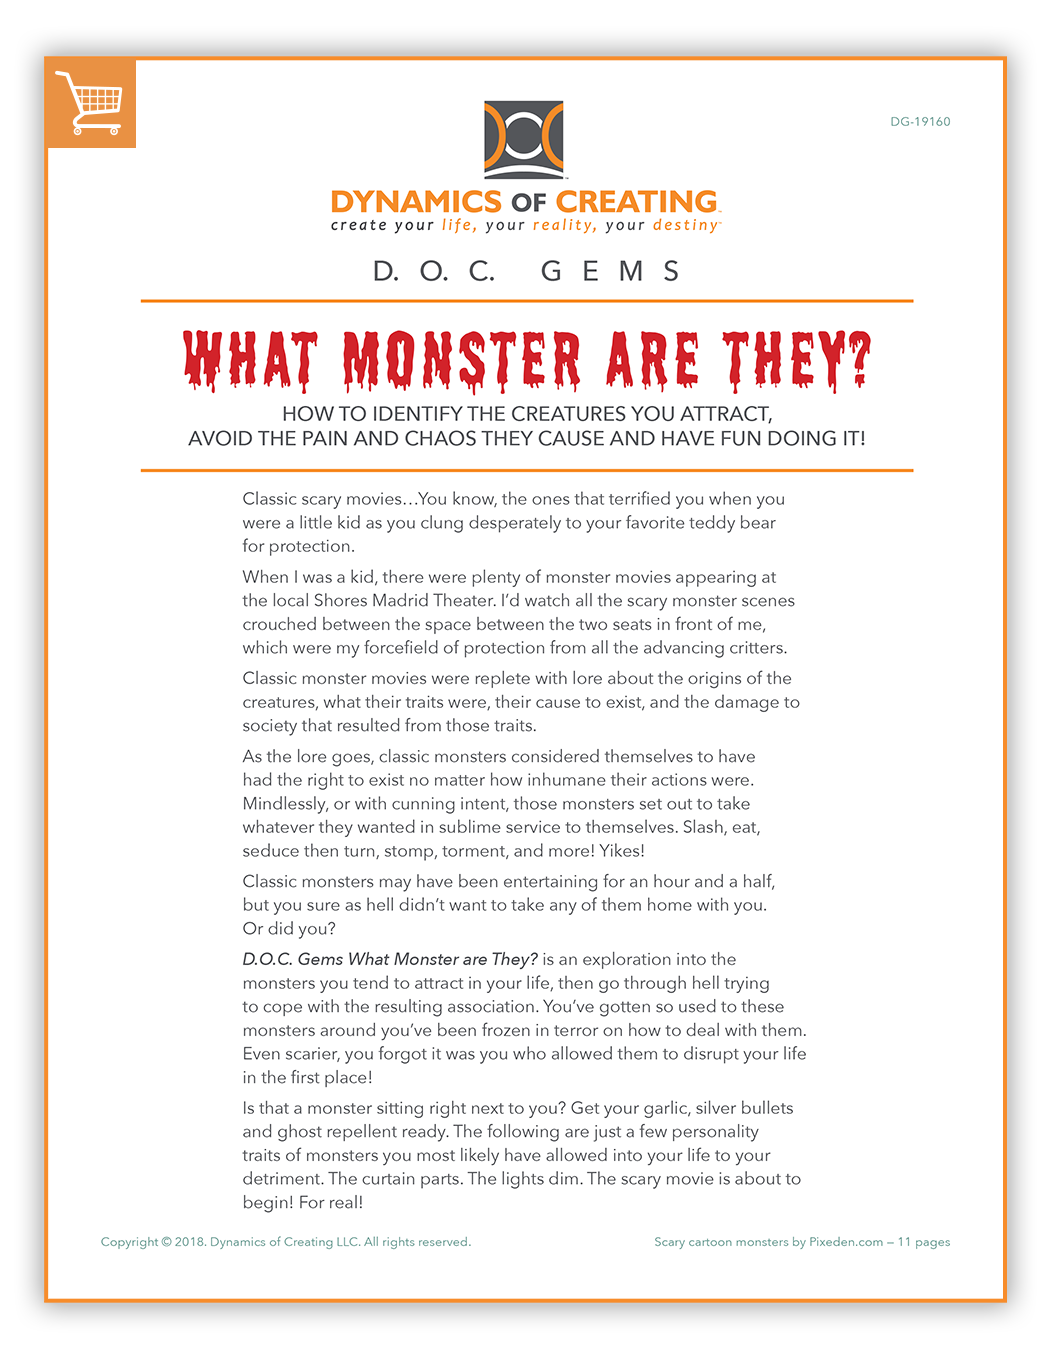 DG-19160_DOC_GEMS_What Monster Are They_ProdView